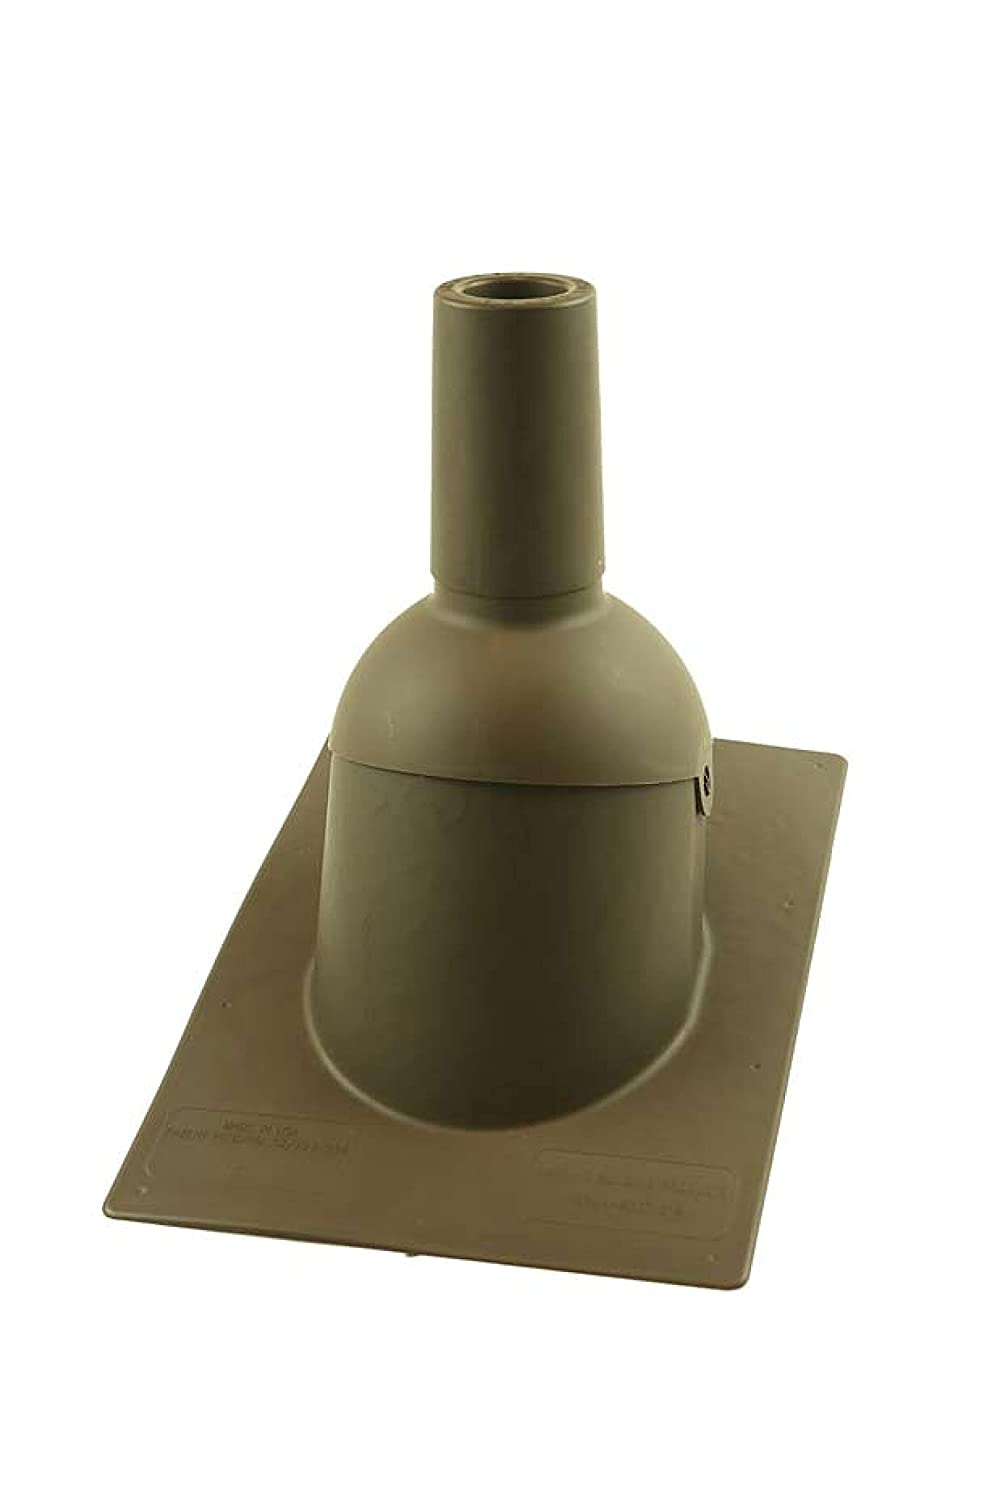 2-Inch Fits 2-Inch PVC Pipes Perma Boot 312-2 BRN New OEM Plumbing Vent Boot for New Construction Brown